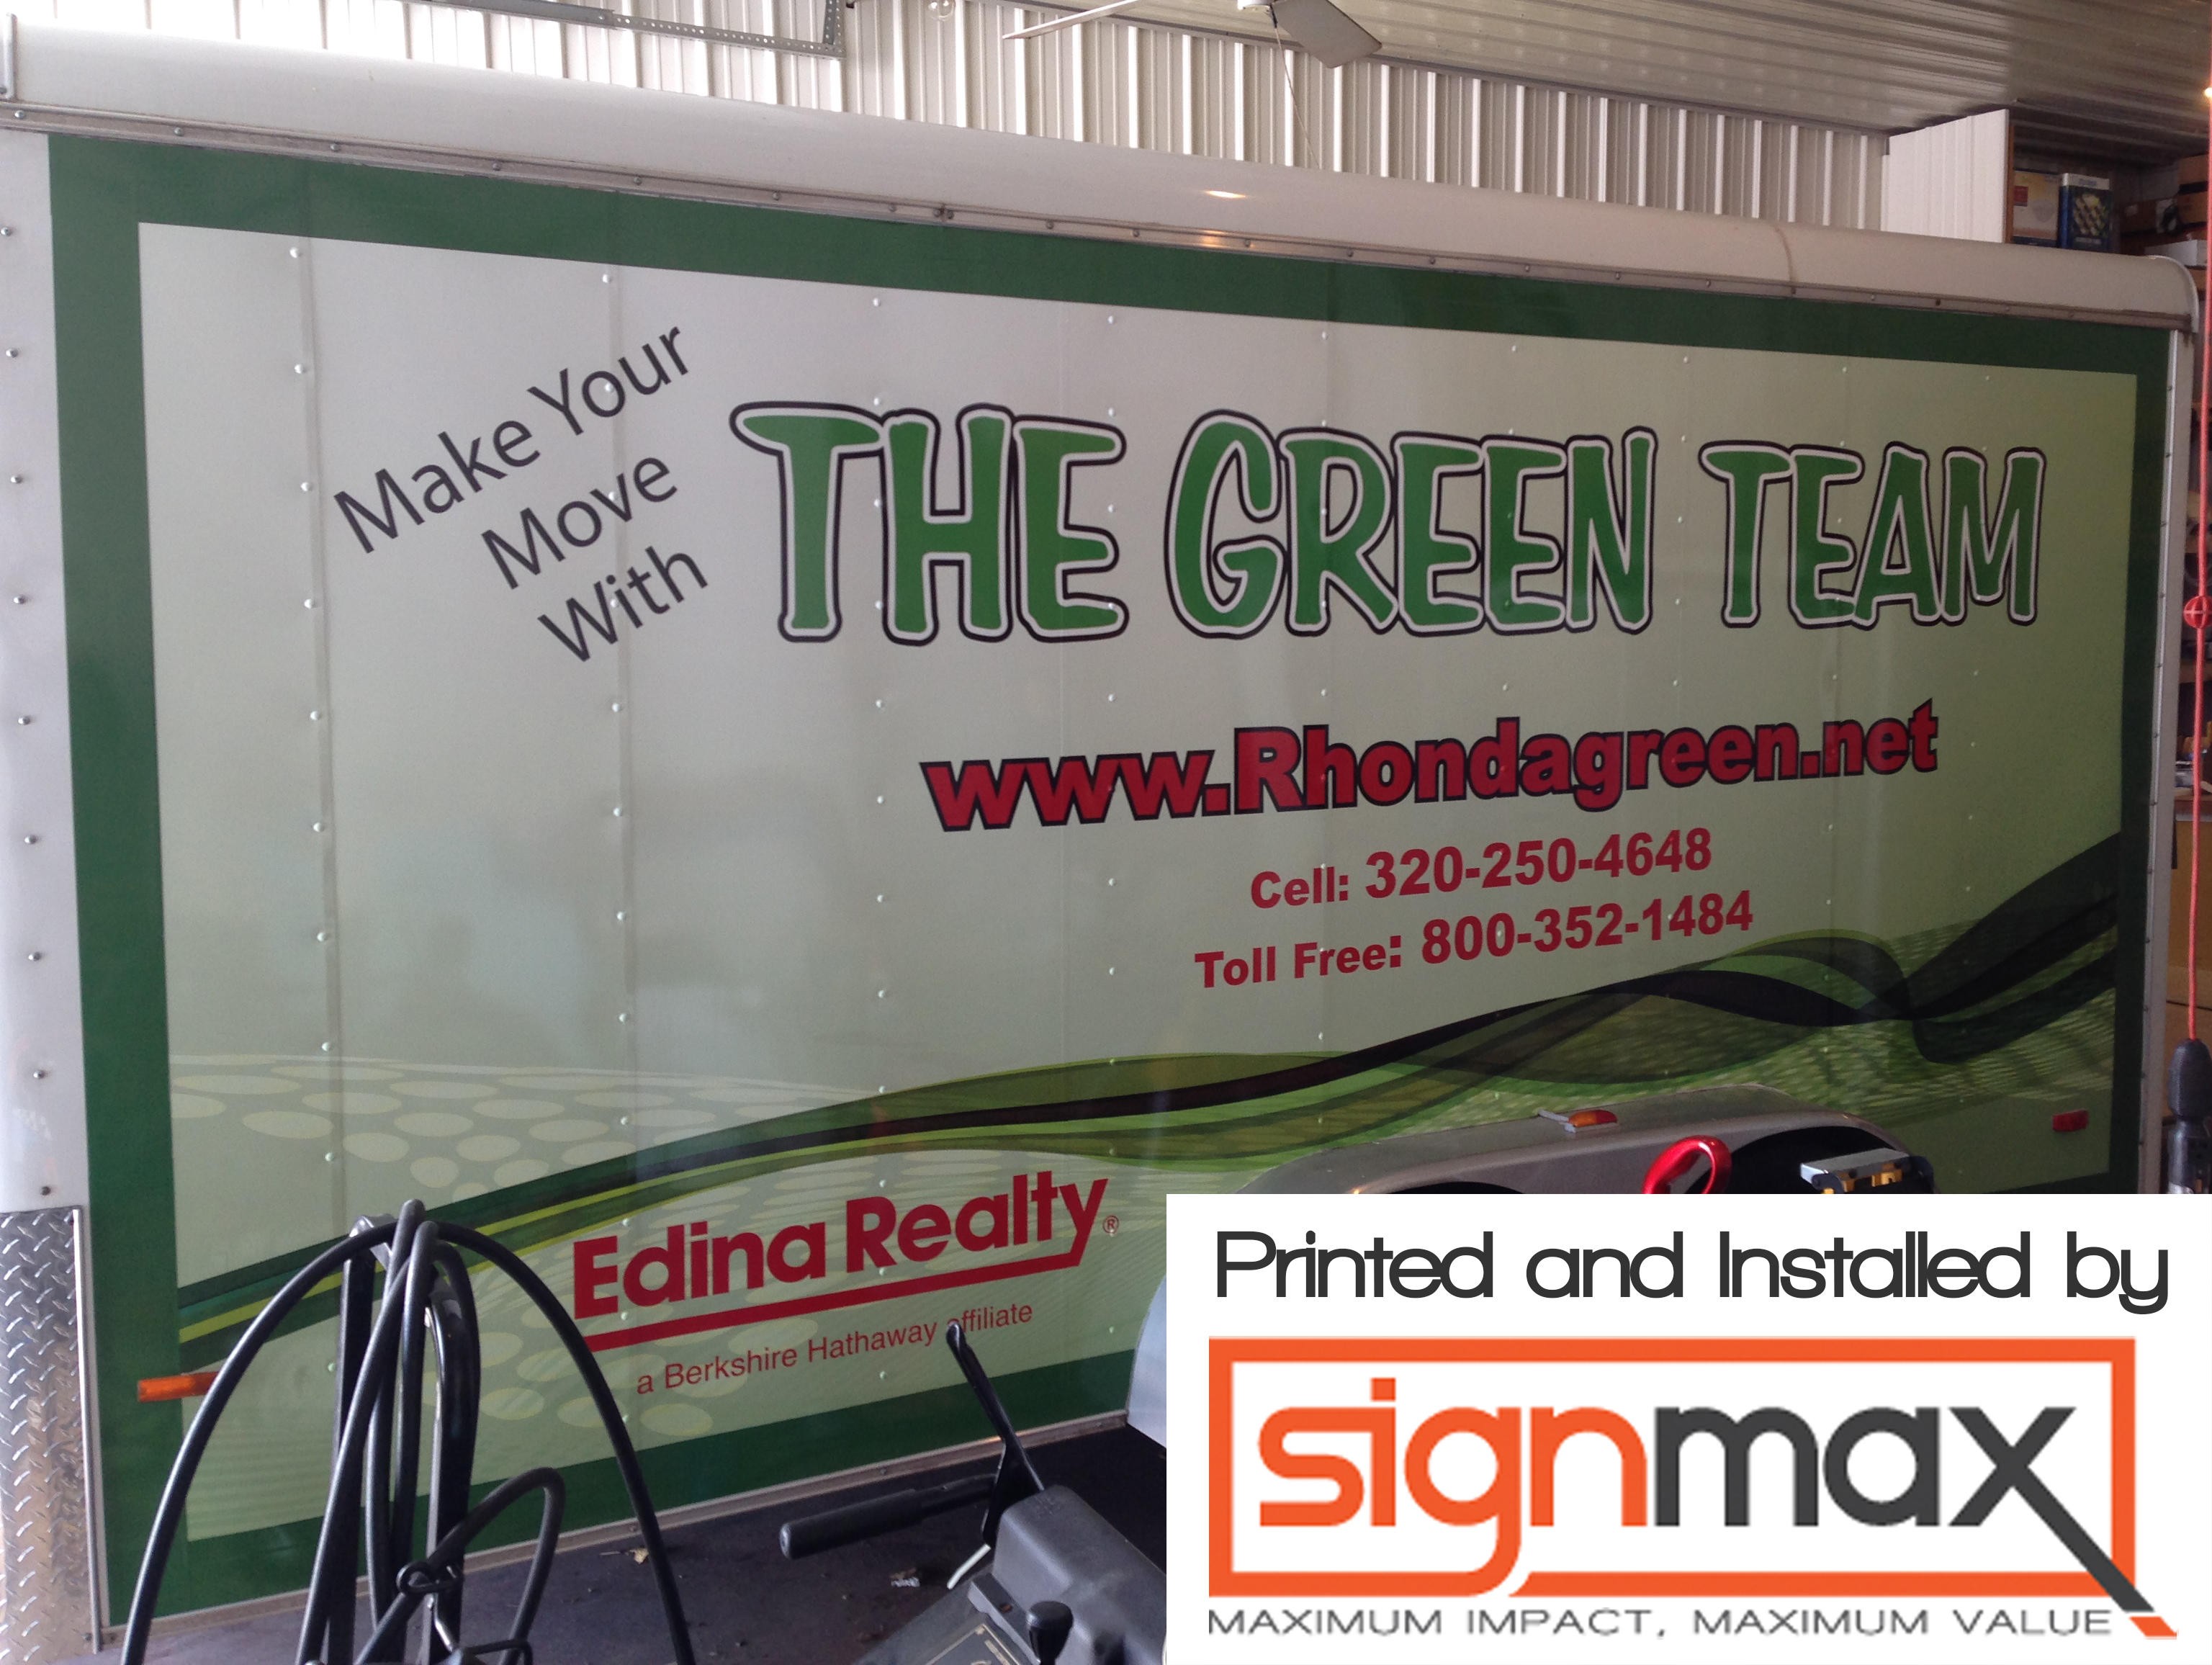 Edina Realty Trailer Wrap - Printed & Installed by Signmax